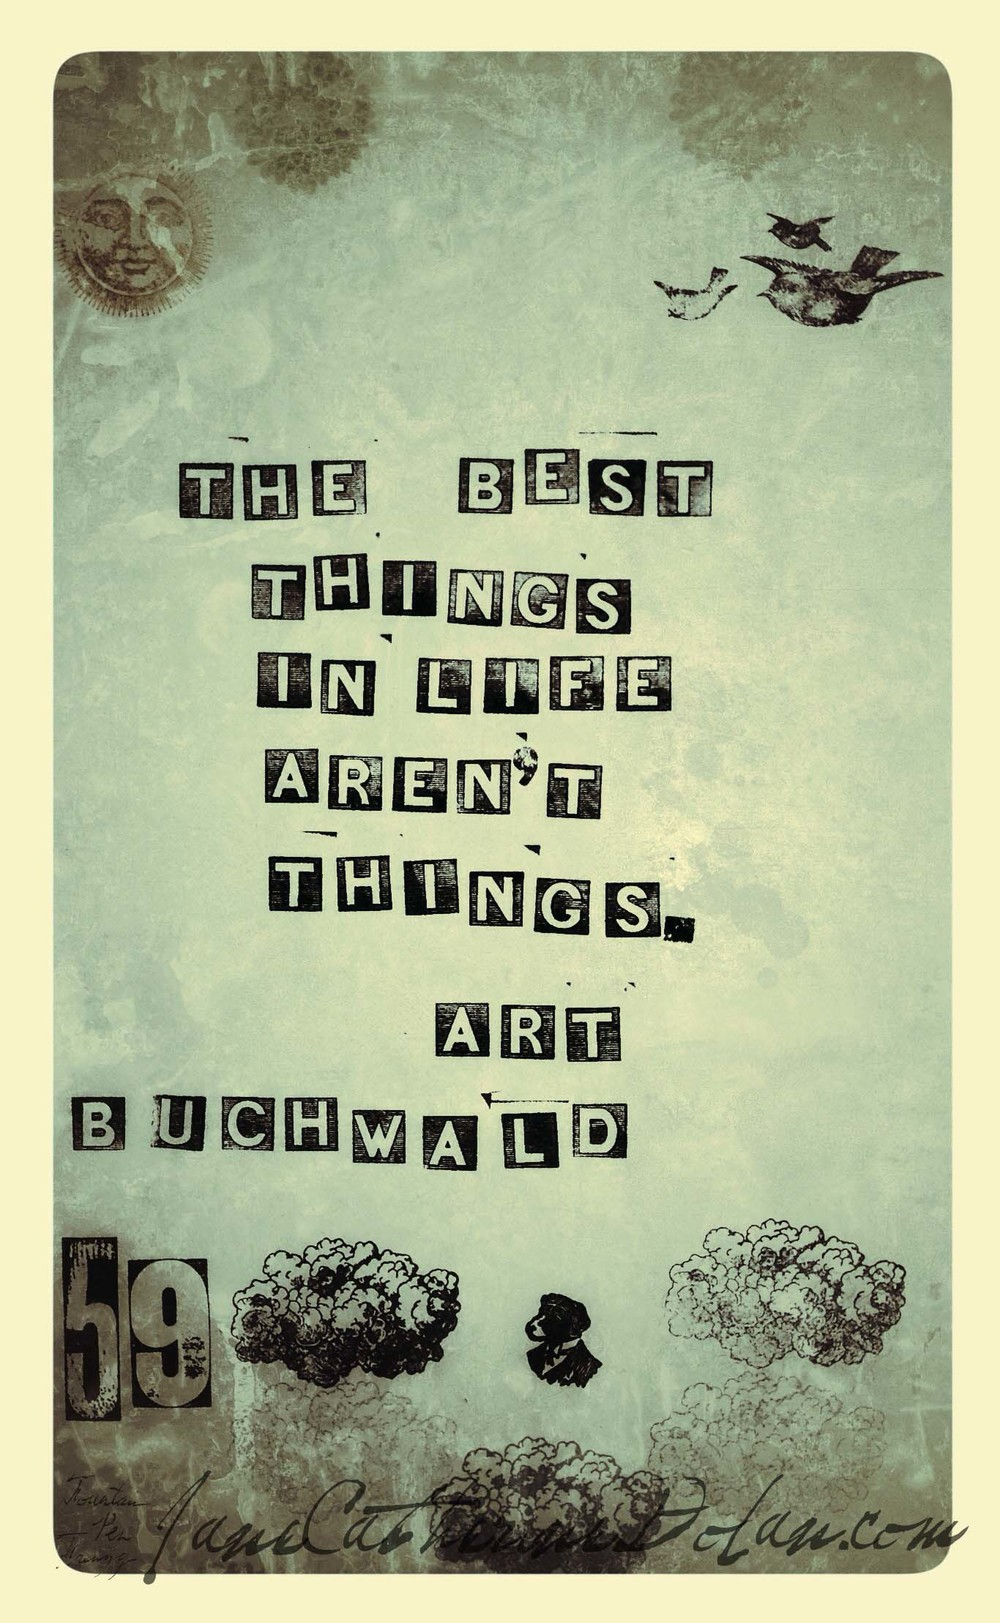 Quote_59_Buchwald.jpg